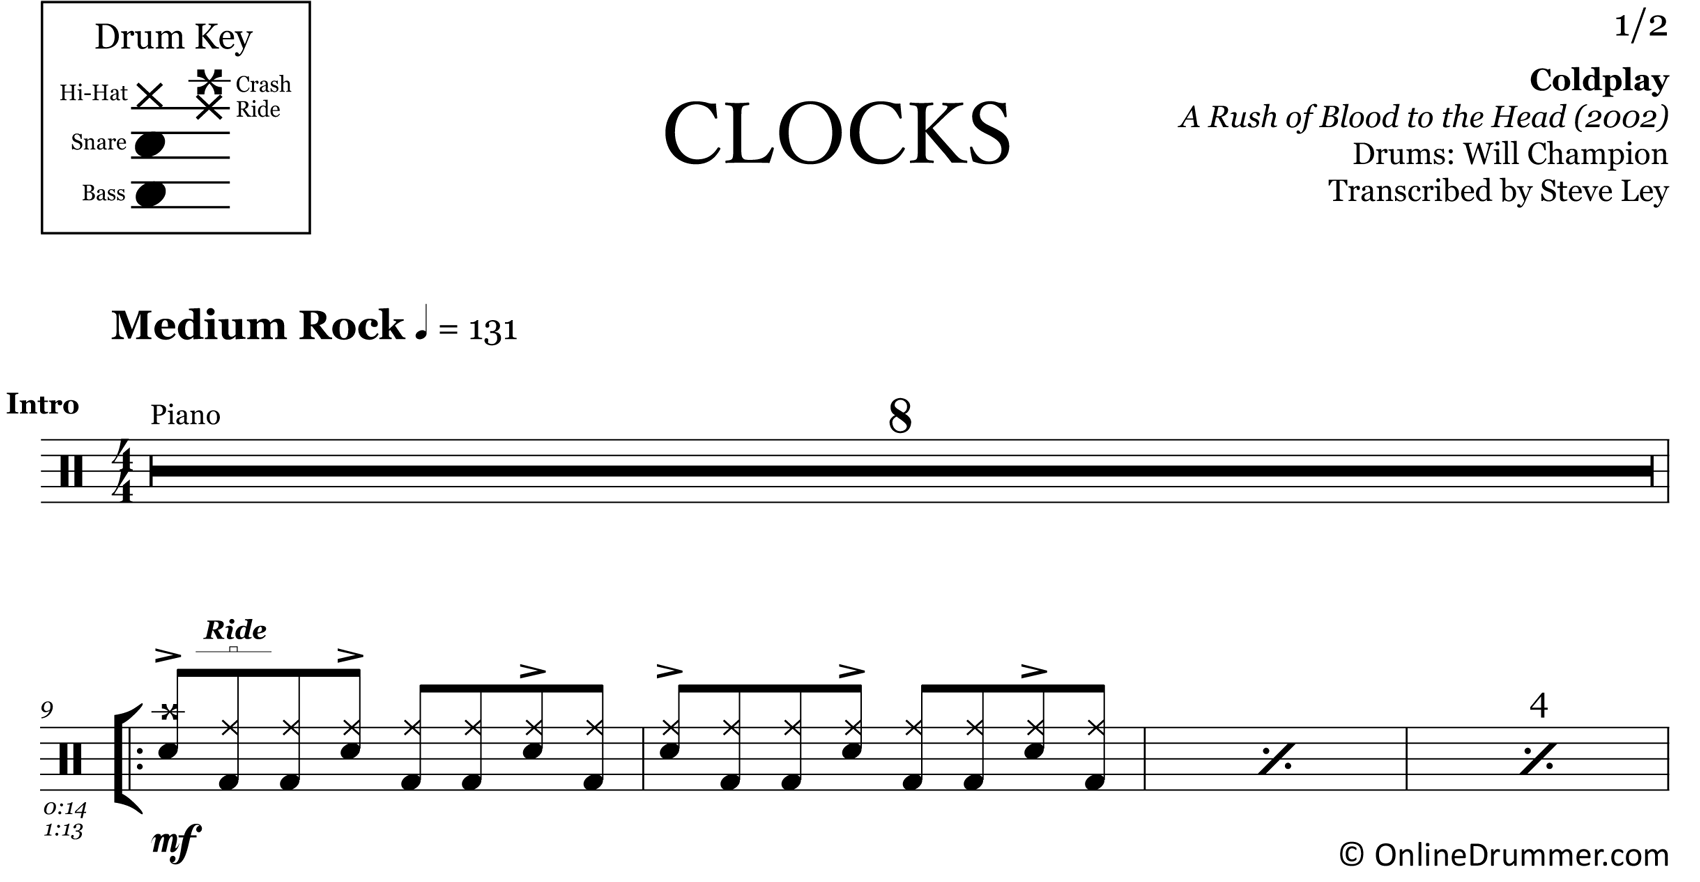 Clocks - Coldplay - Drum Sheet Music